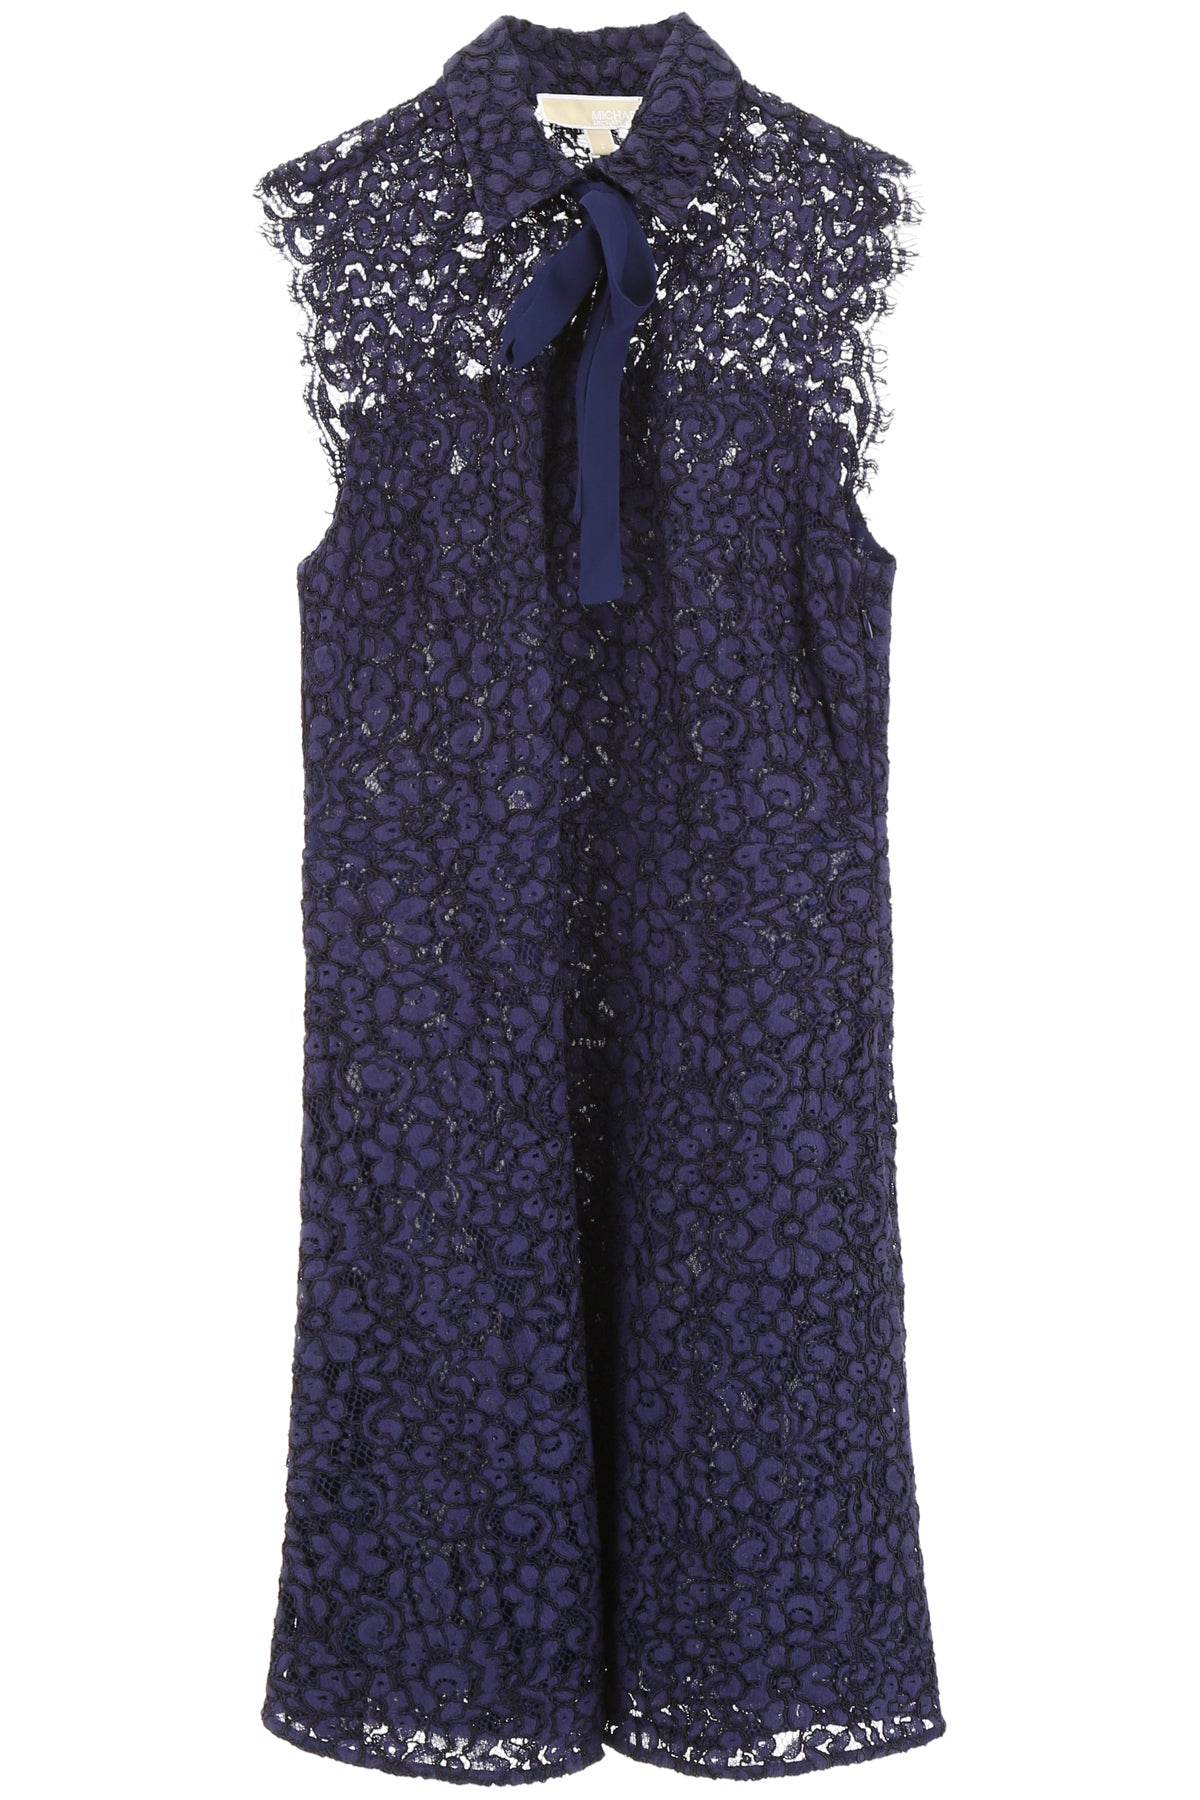 Michael Michael Kors Dresses MICHAEL MICHAEL KORS PUSSYBOW LACE DRESS